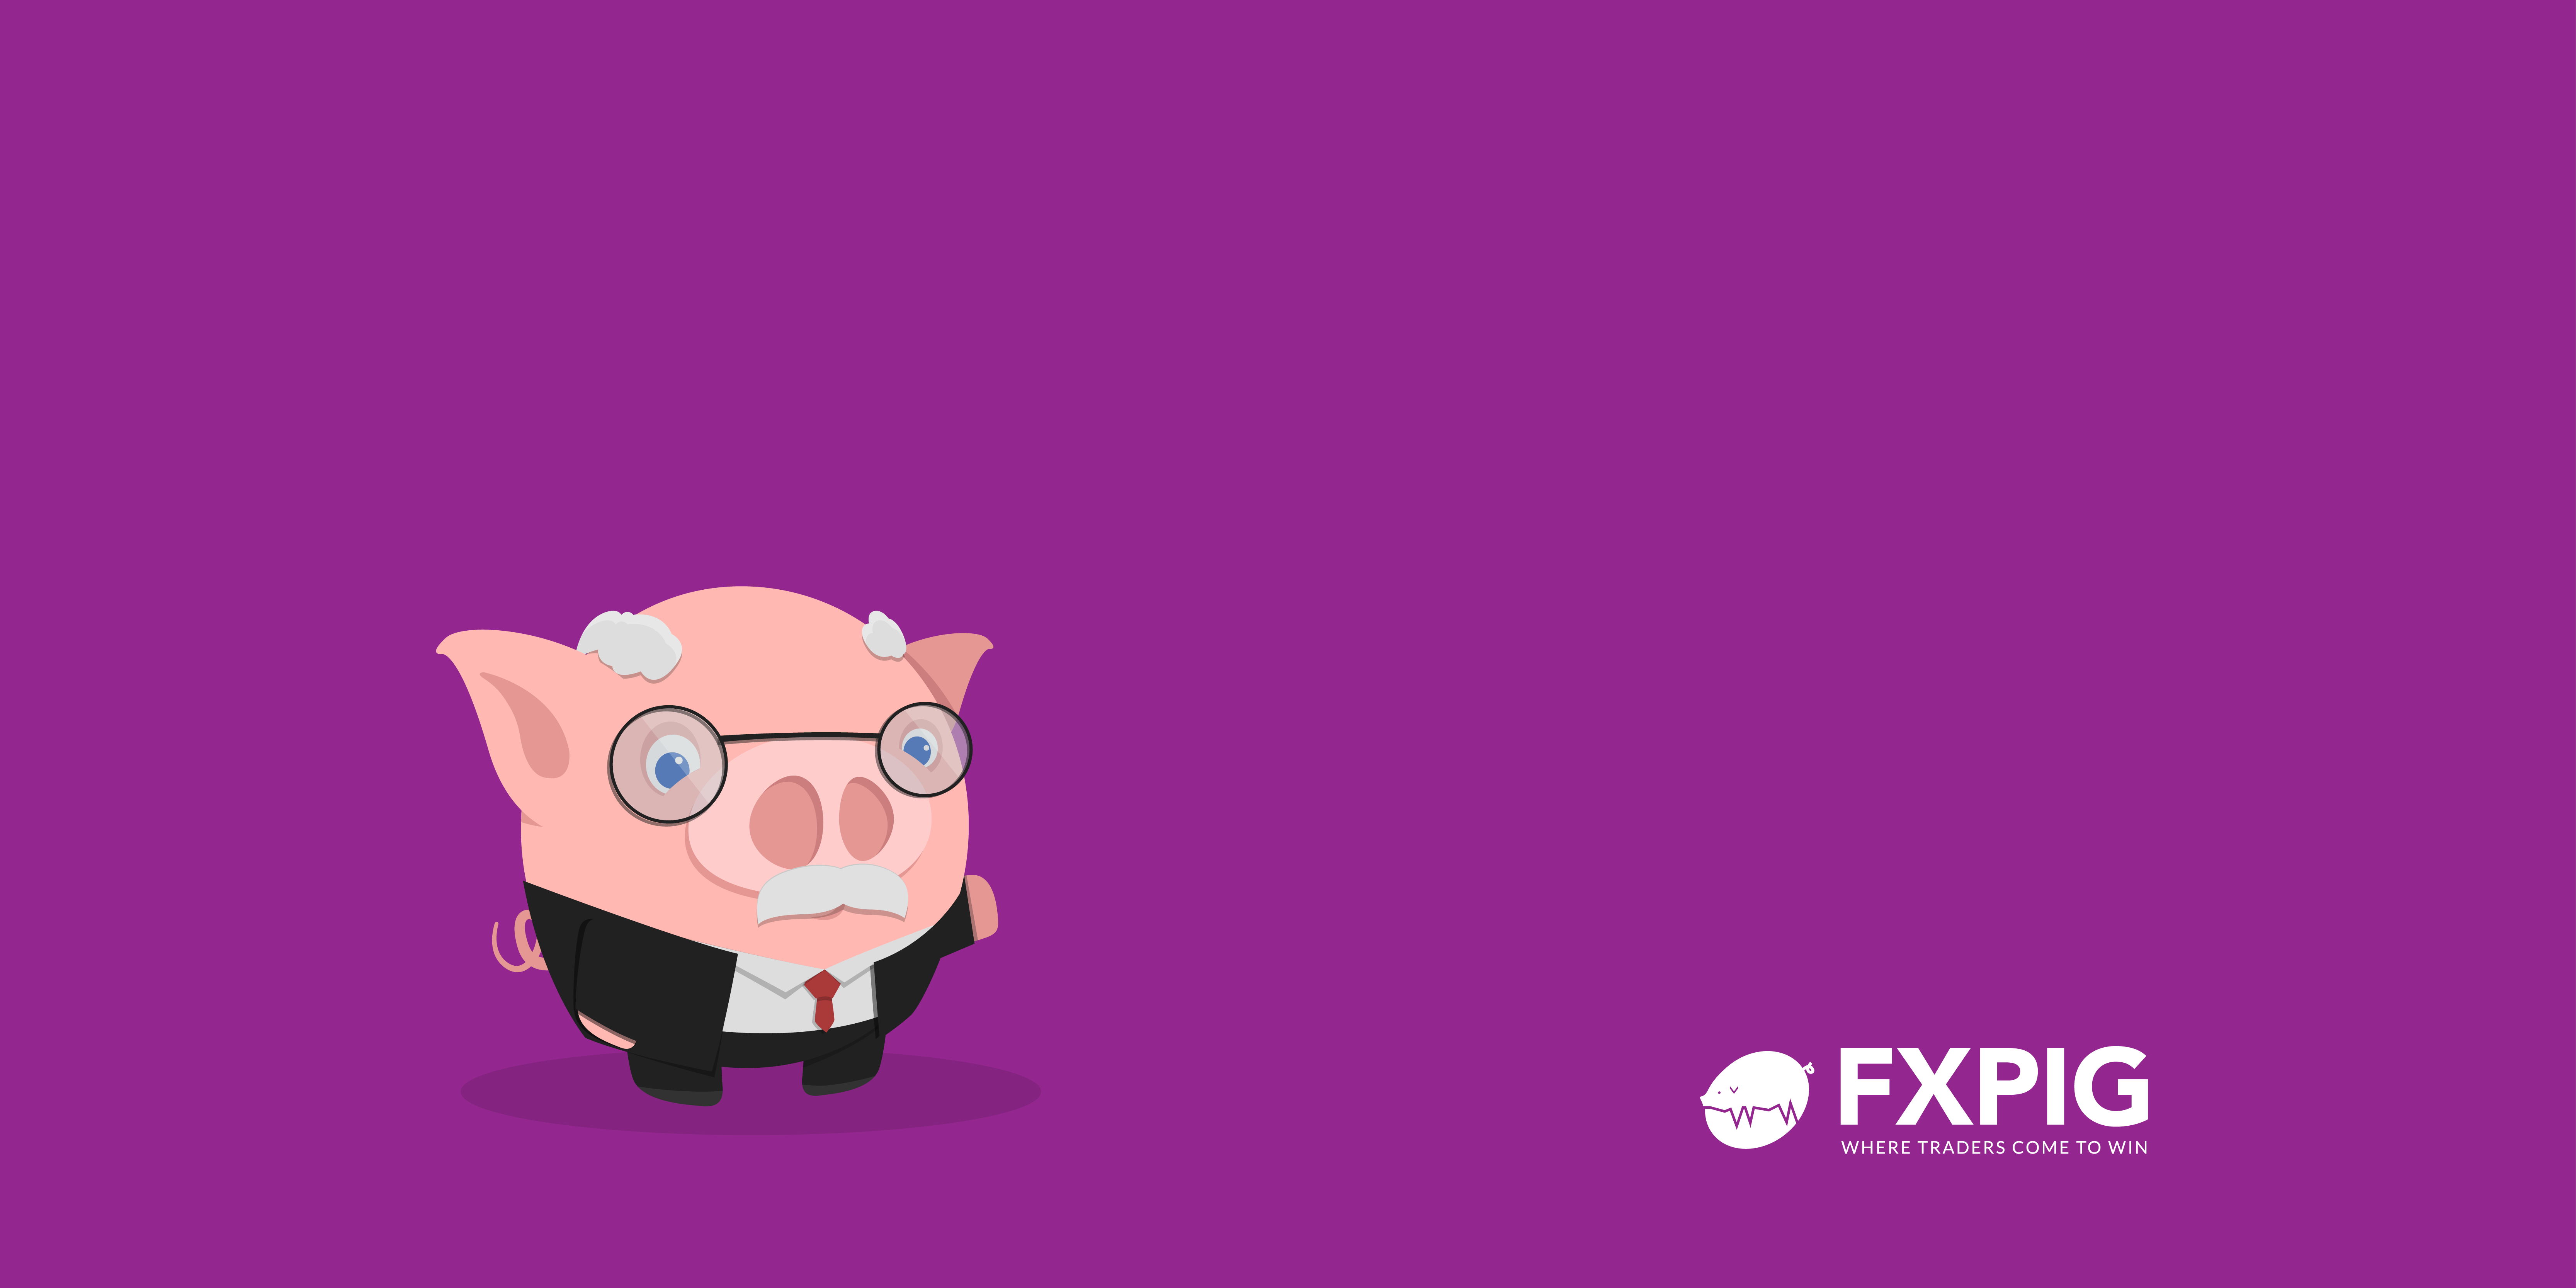 FOREX_Trading-quote_Pig-Insider-wisdom_What-traders-need_FXPIG